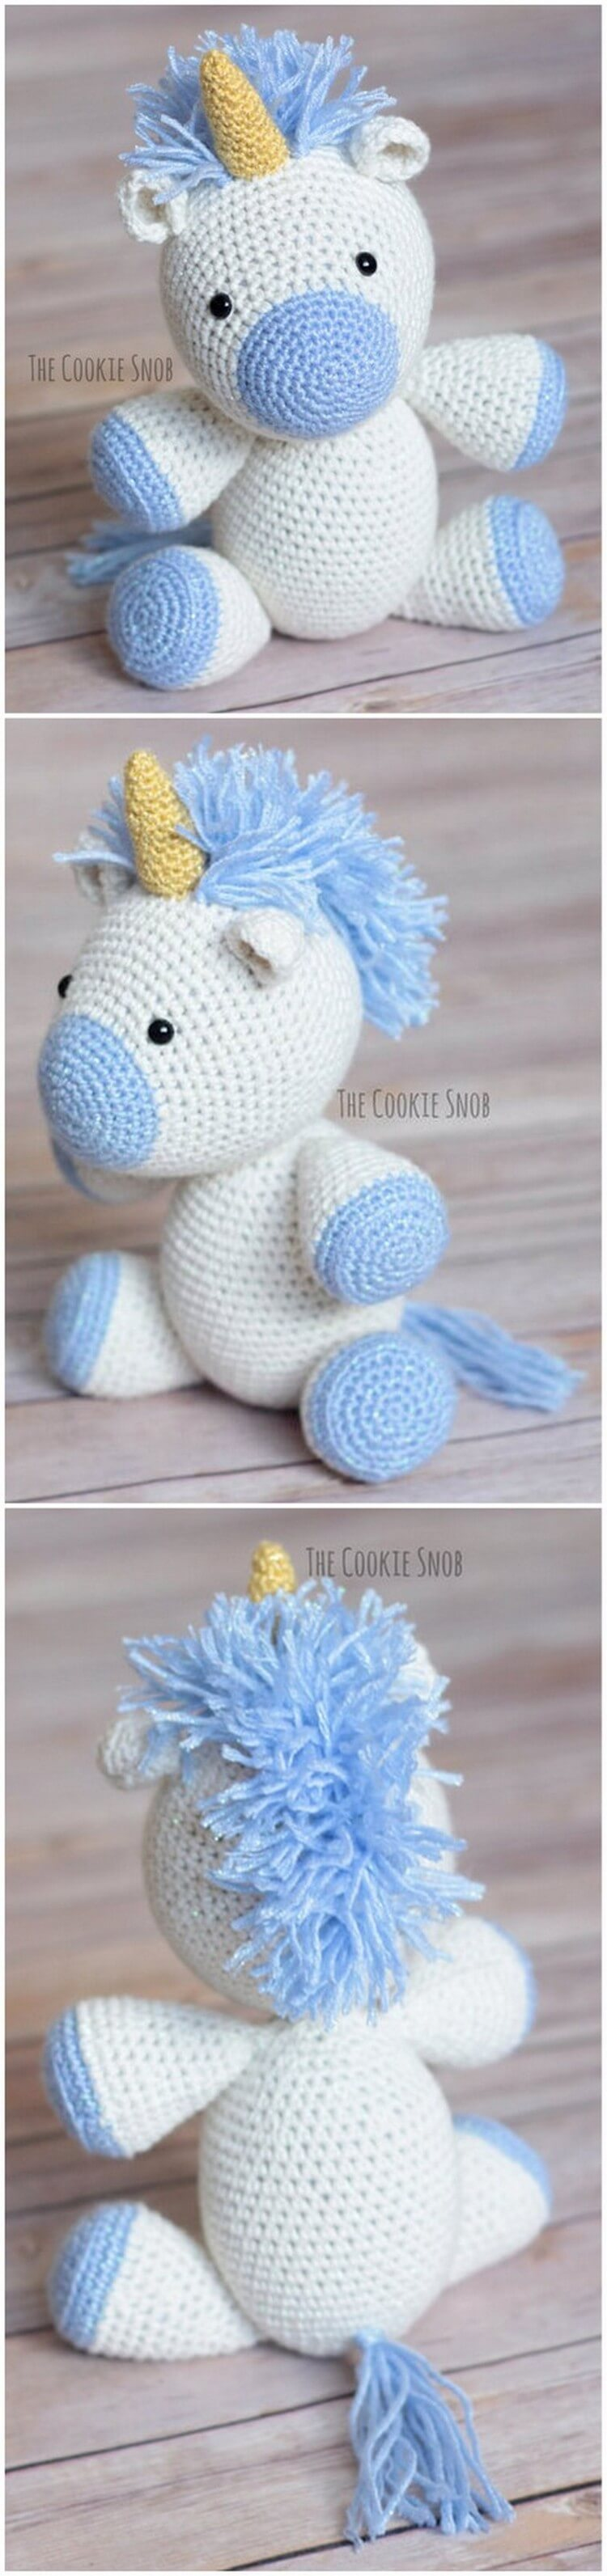 Crochet Unicorn Pattern (33)